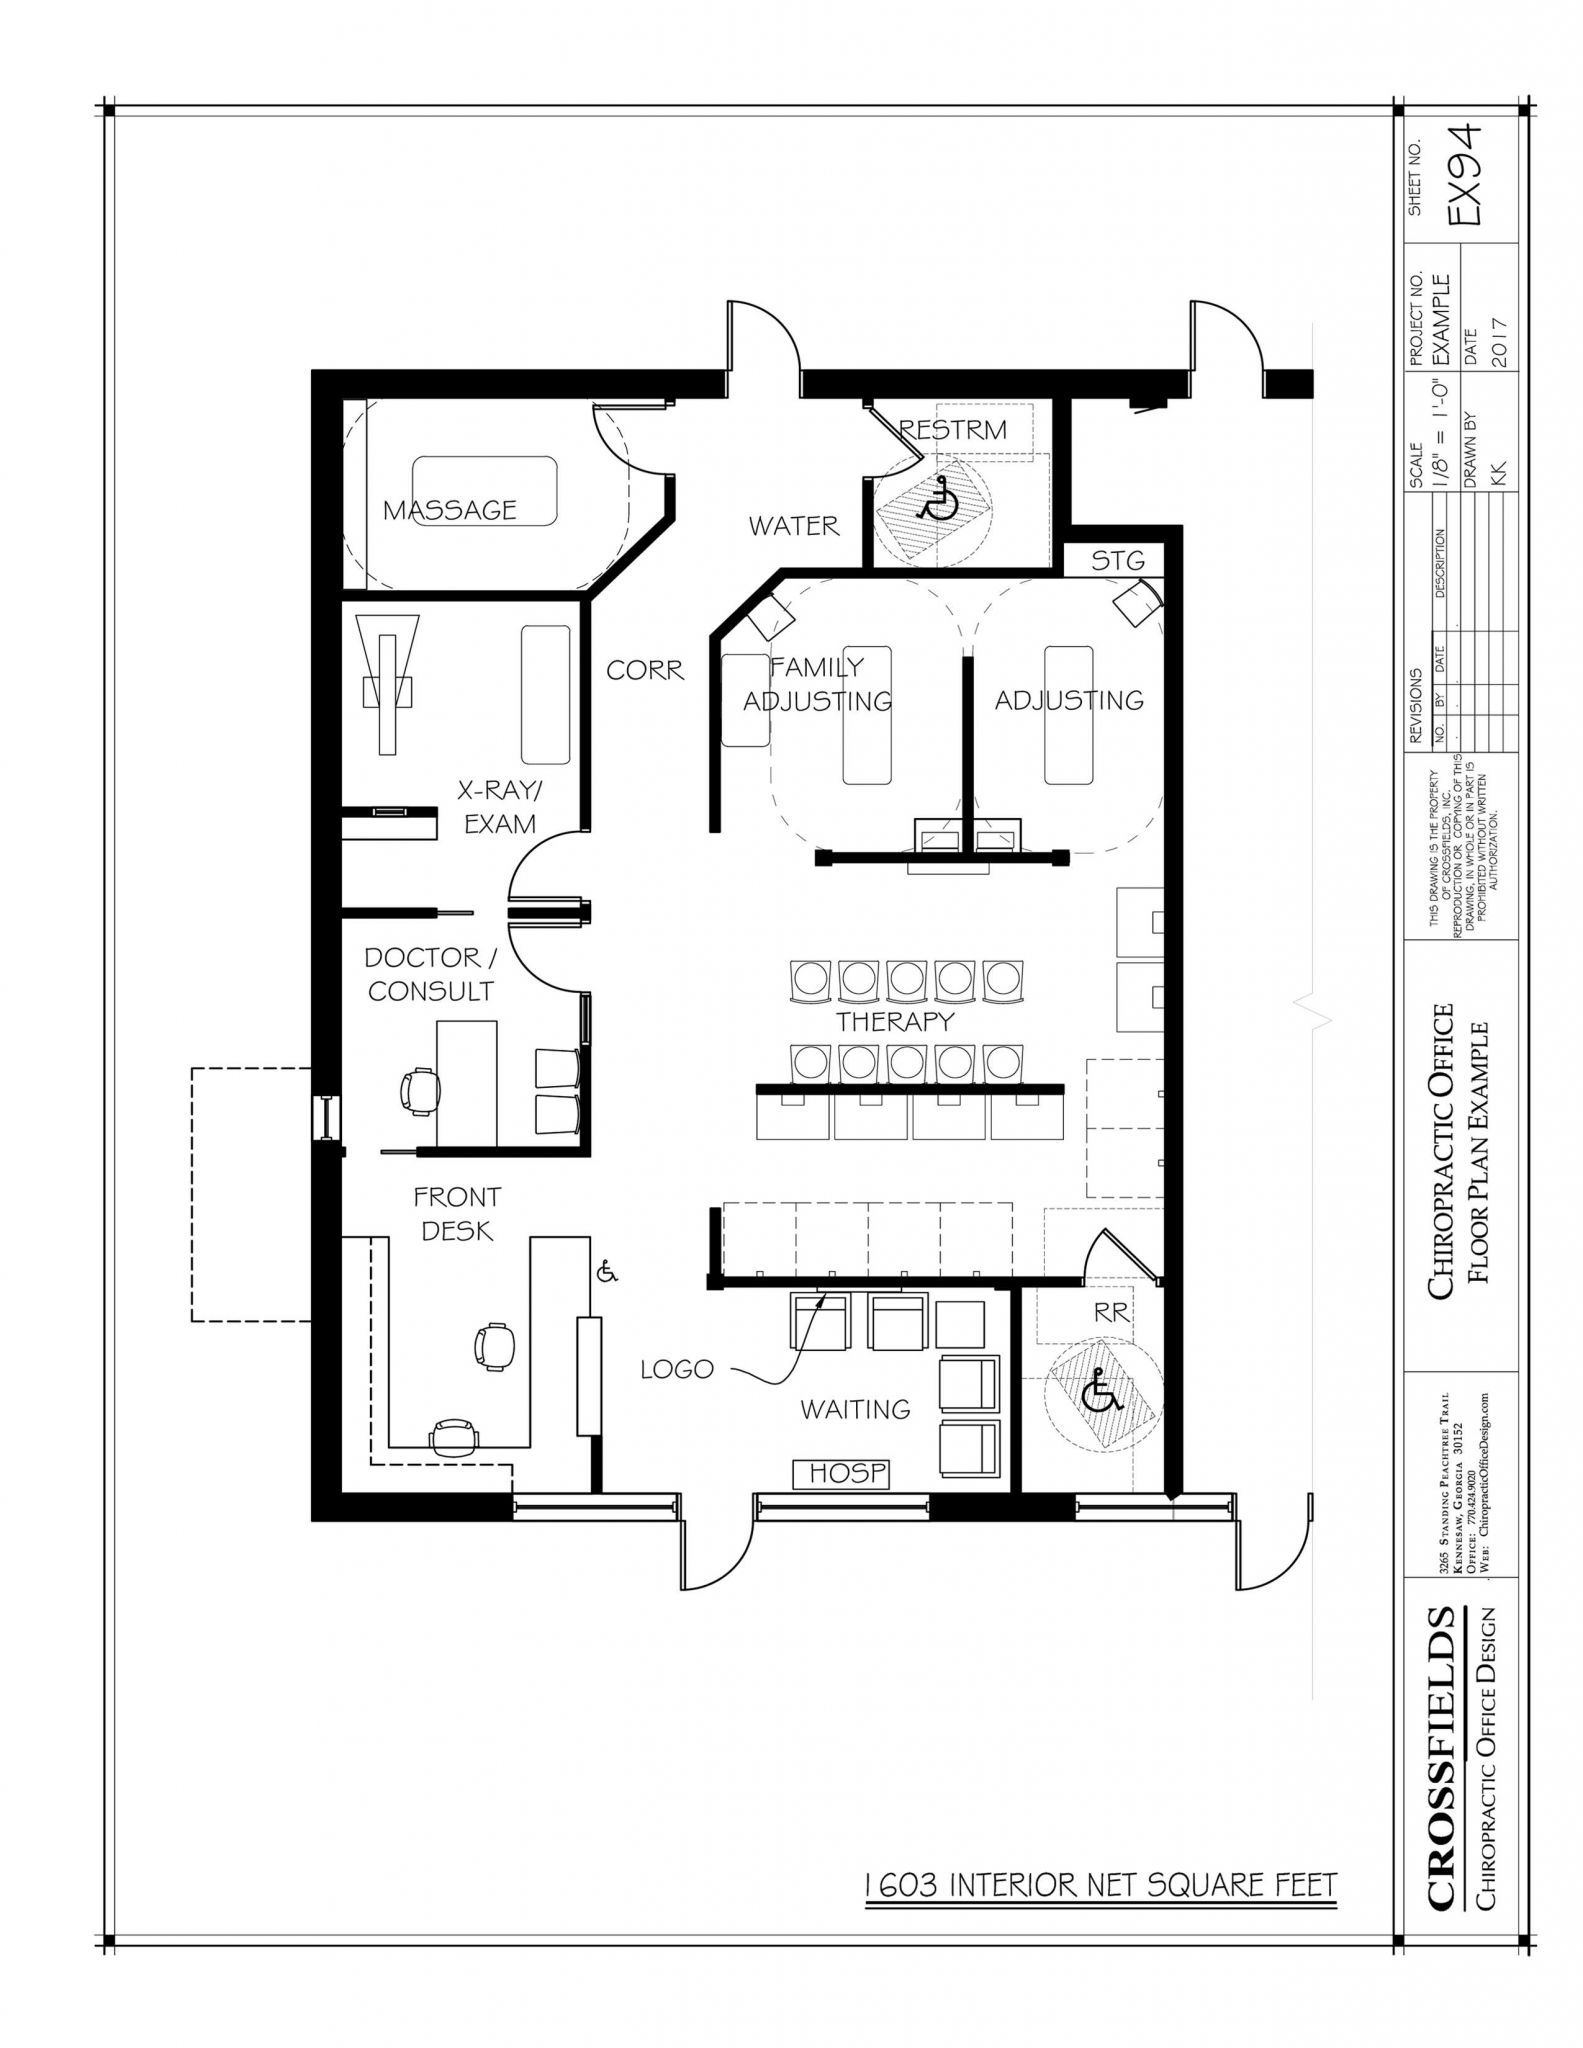 Custom House Plans Designs Floor Plan Design Floor Plan Layout House Floor Plans